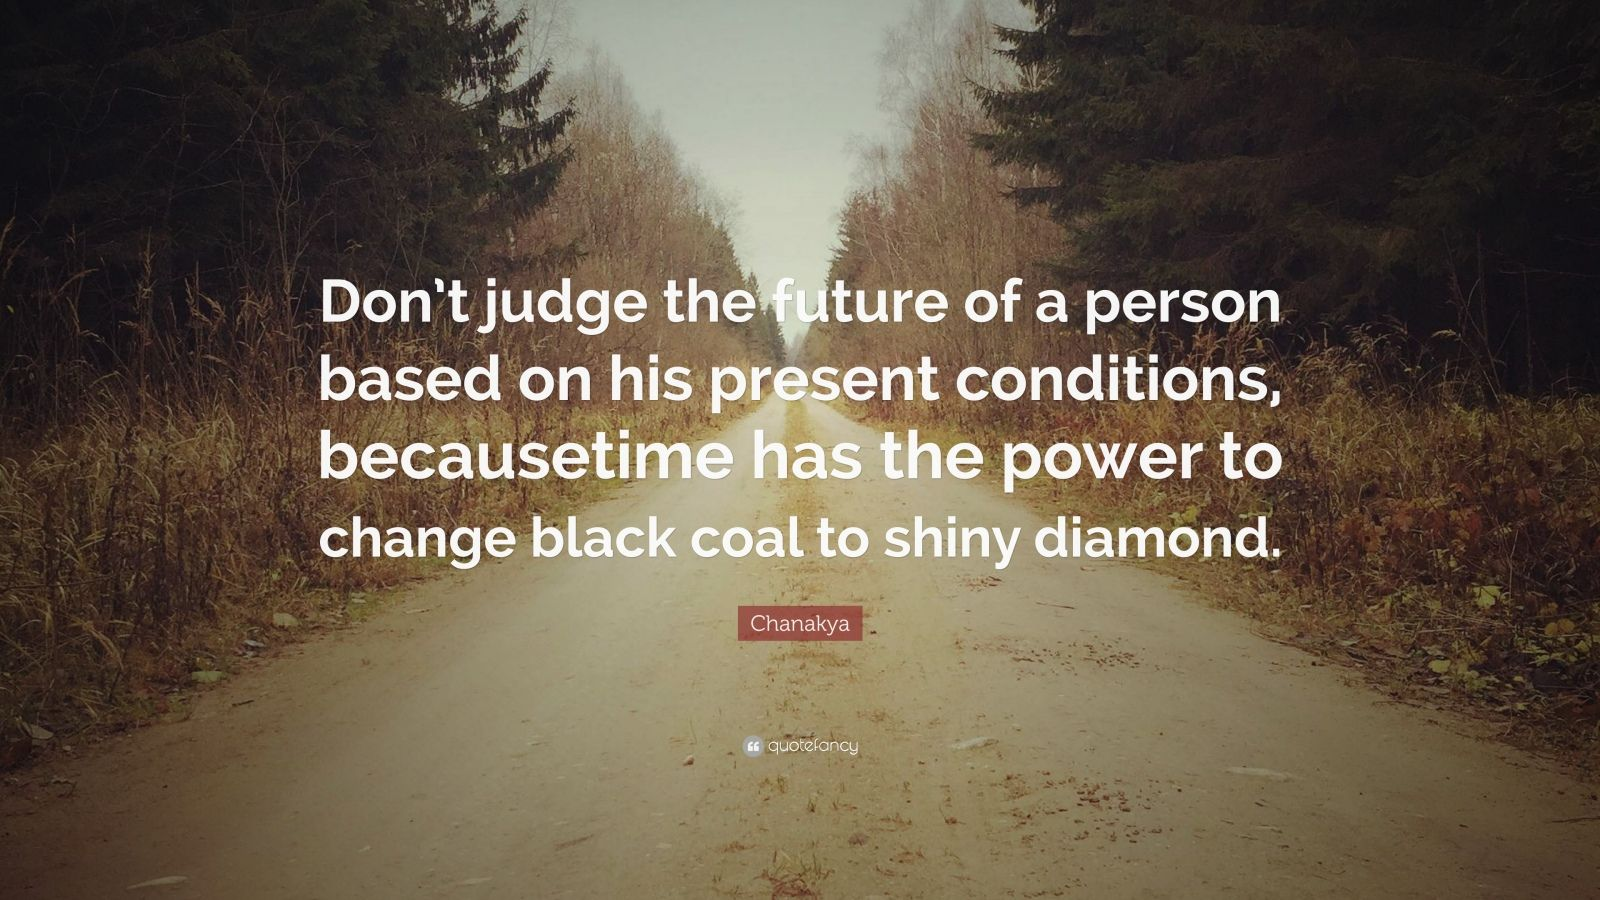 """Chanakya Quote: """"Don't judge the future of a person based on his present conditions, becausetime has the power to change black coal to shiny diamond."""""""